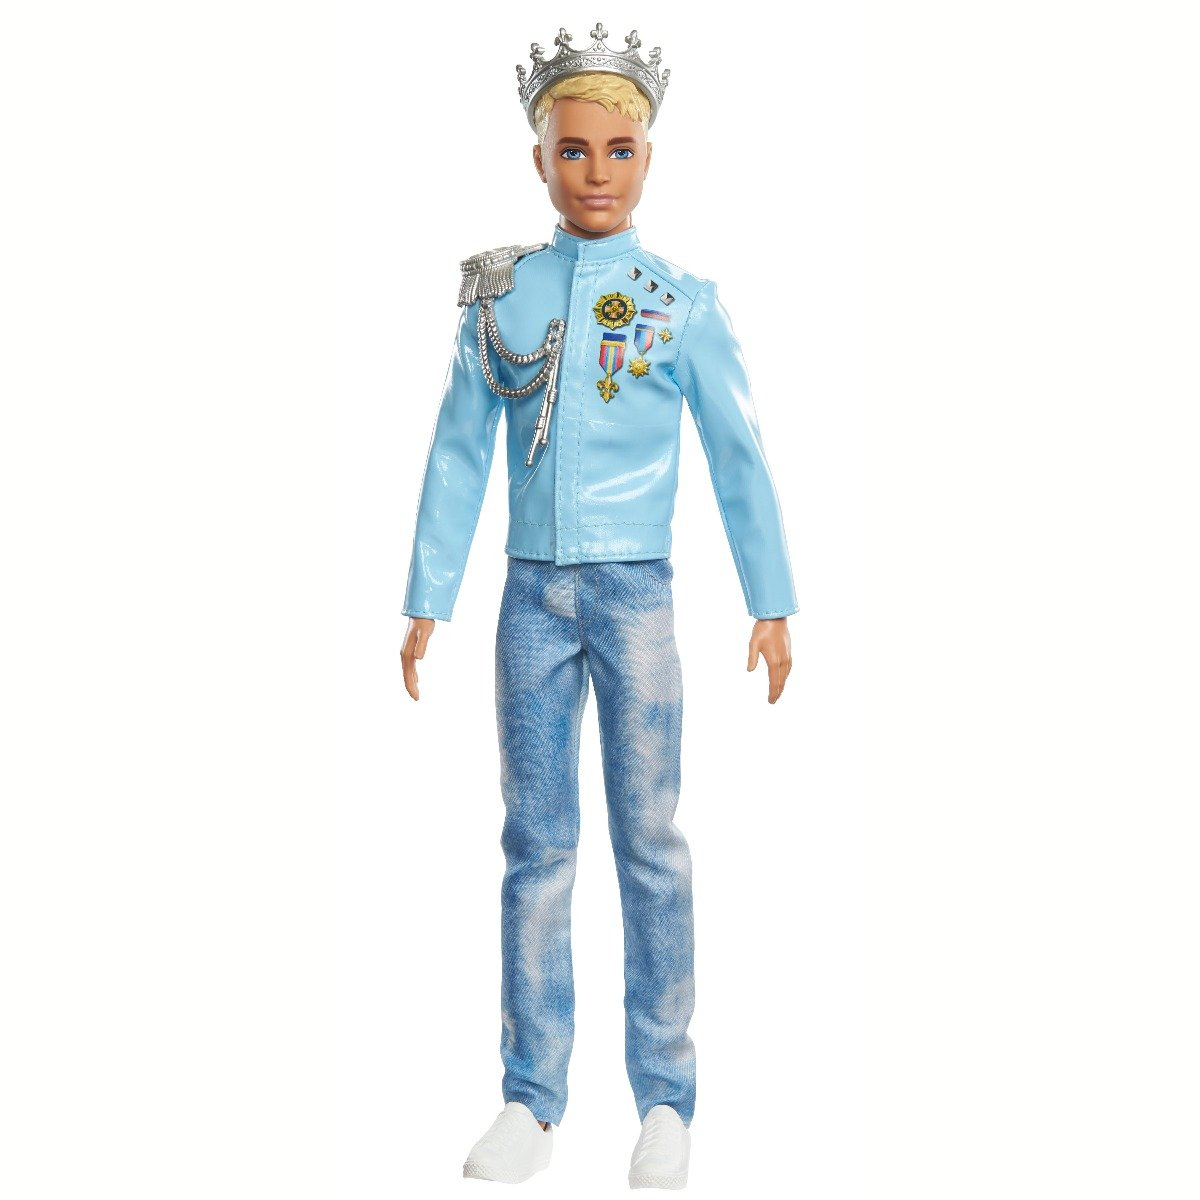 Papusa Barbie Princess Adventure, Printul Ken